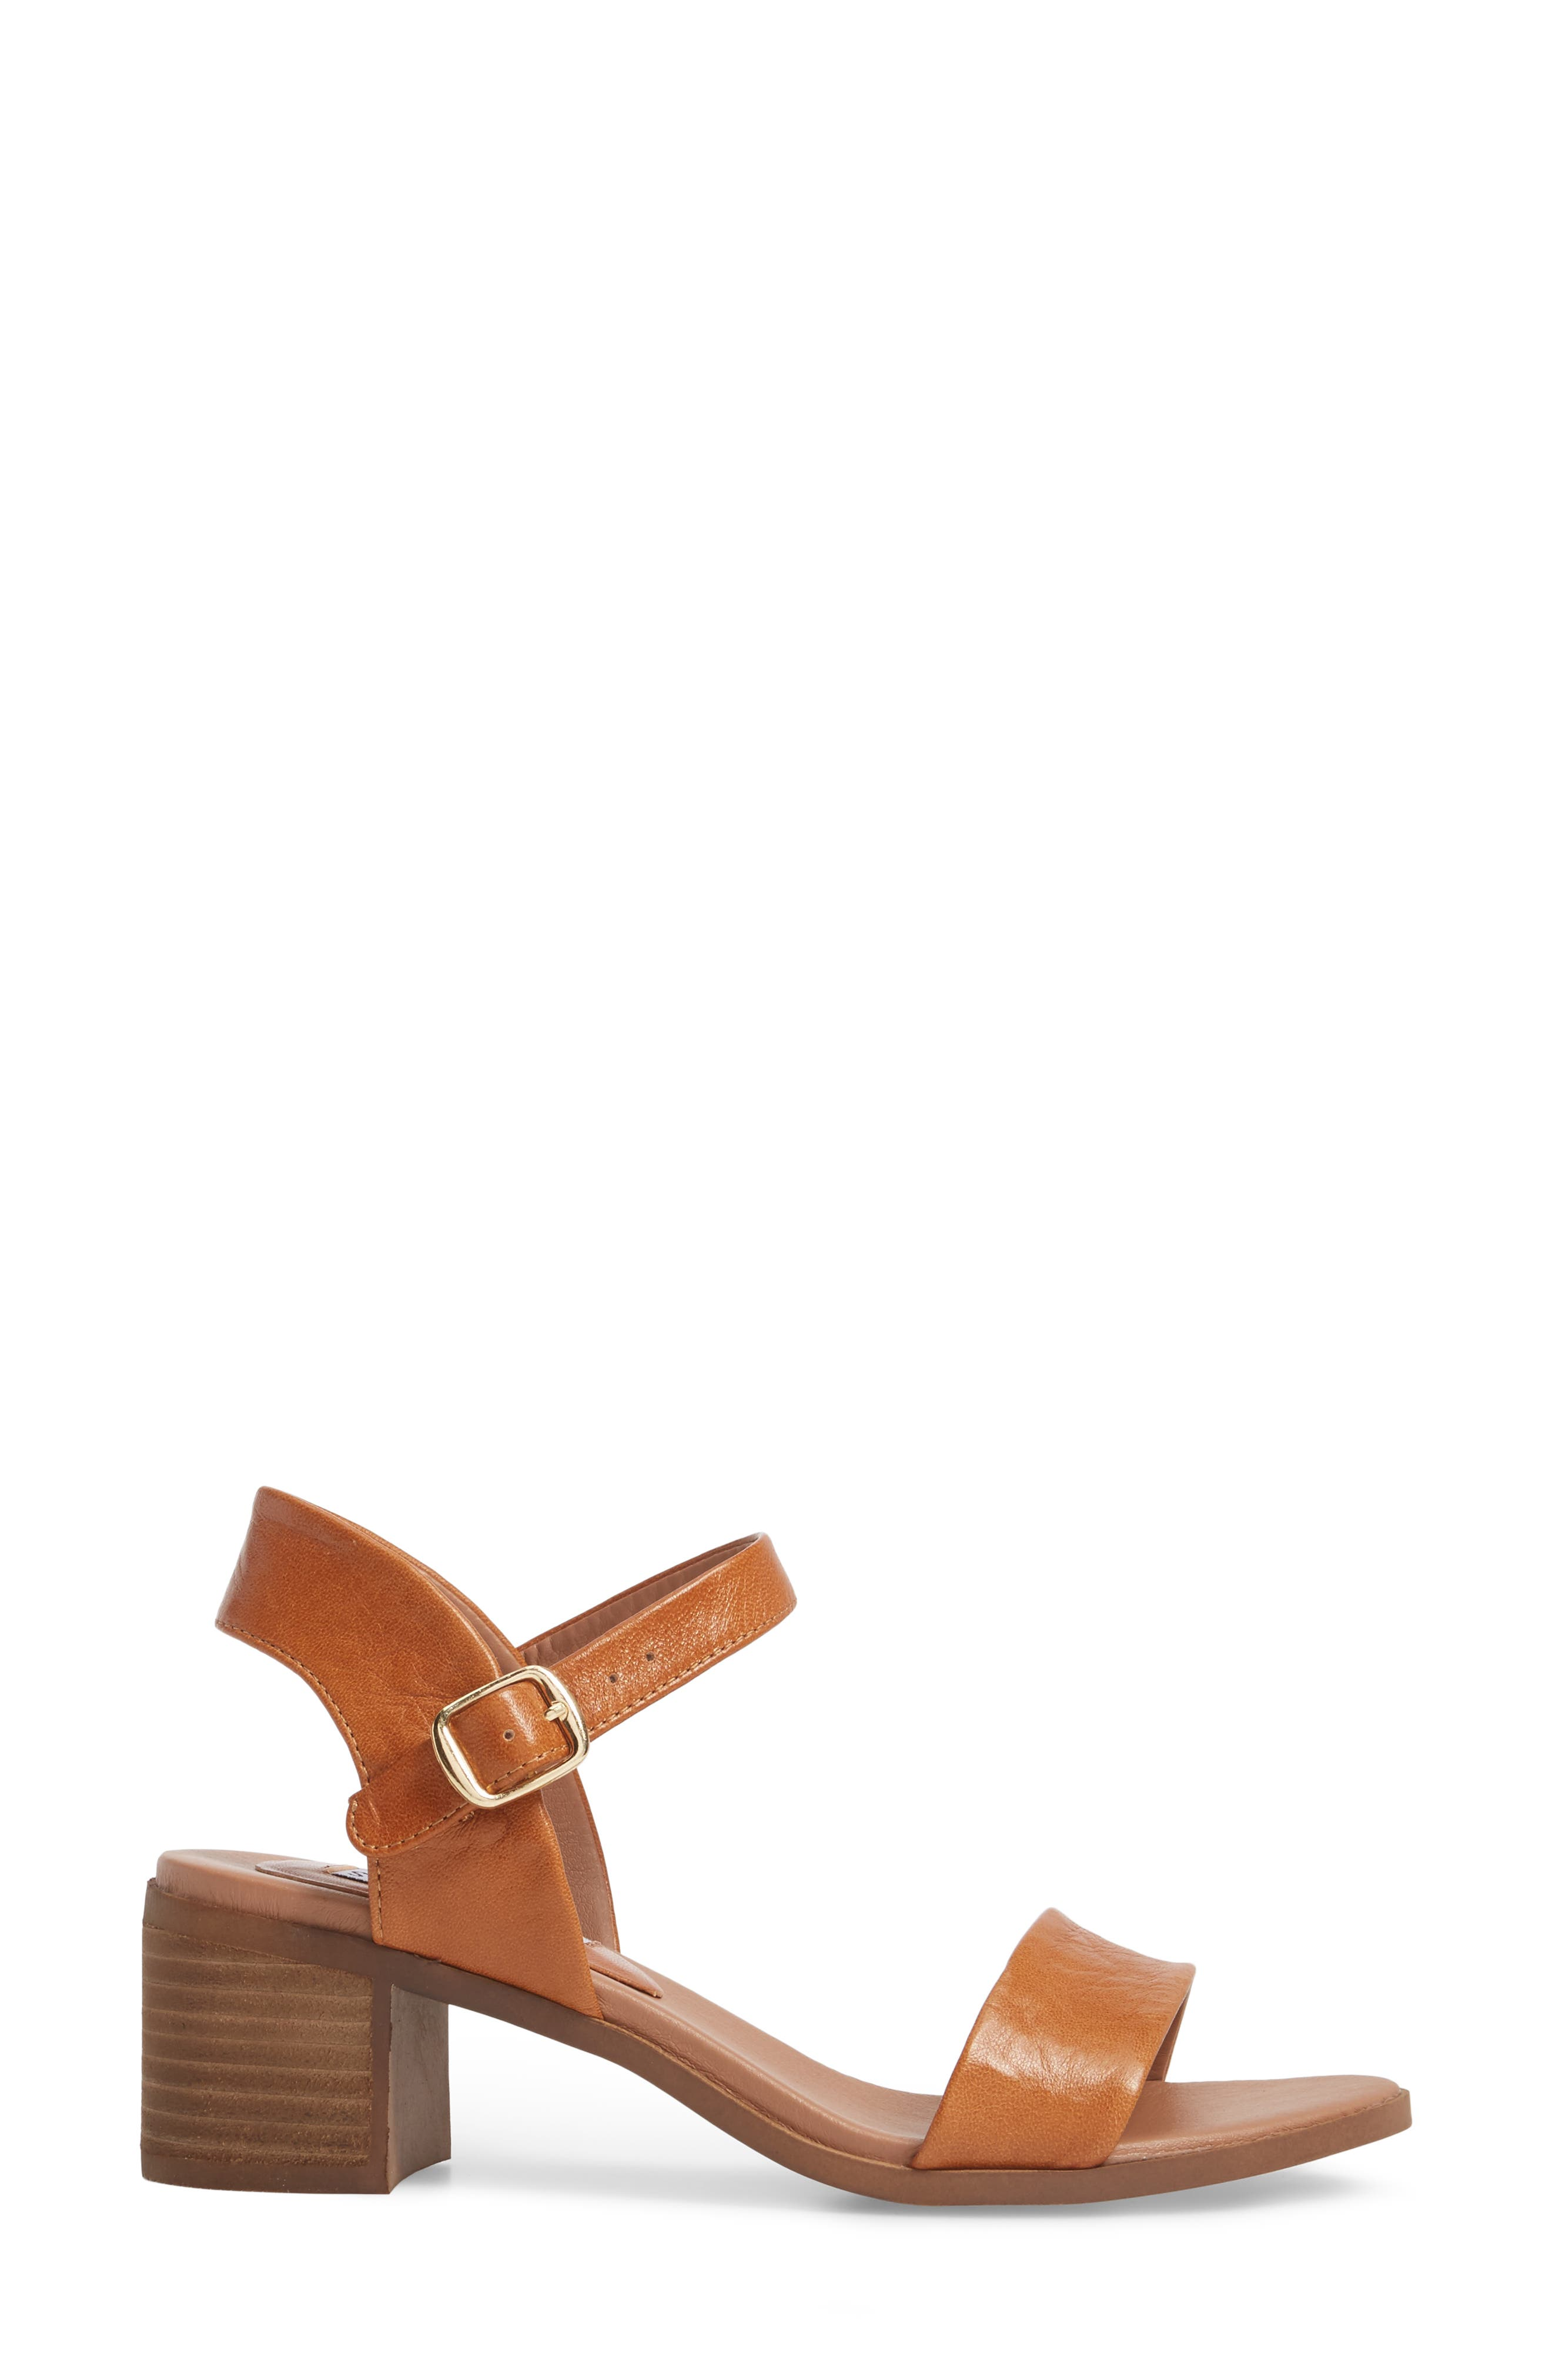 Alternate Image 3  - Steve Madden April Block Heel Sandal (Women)